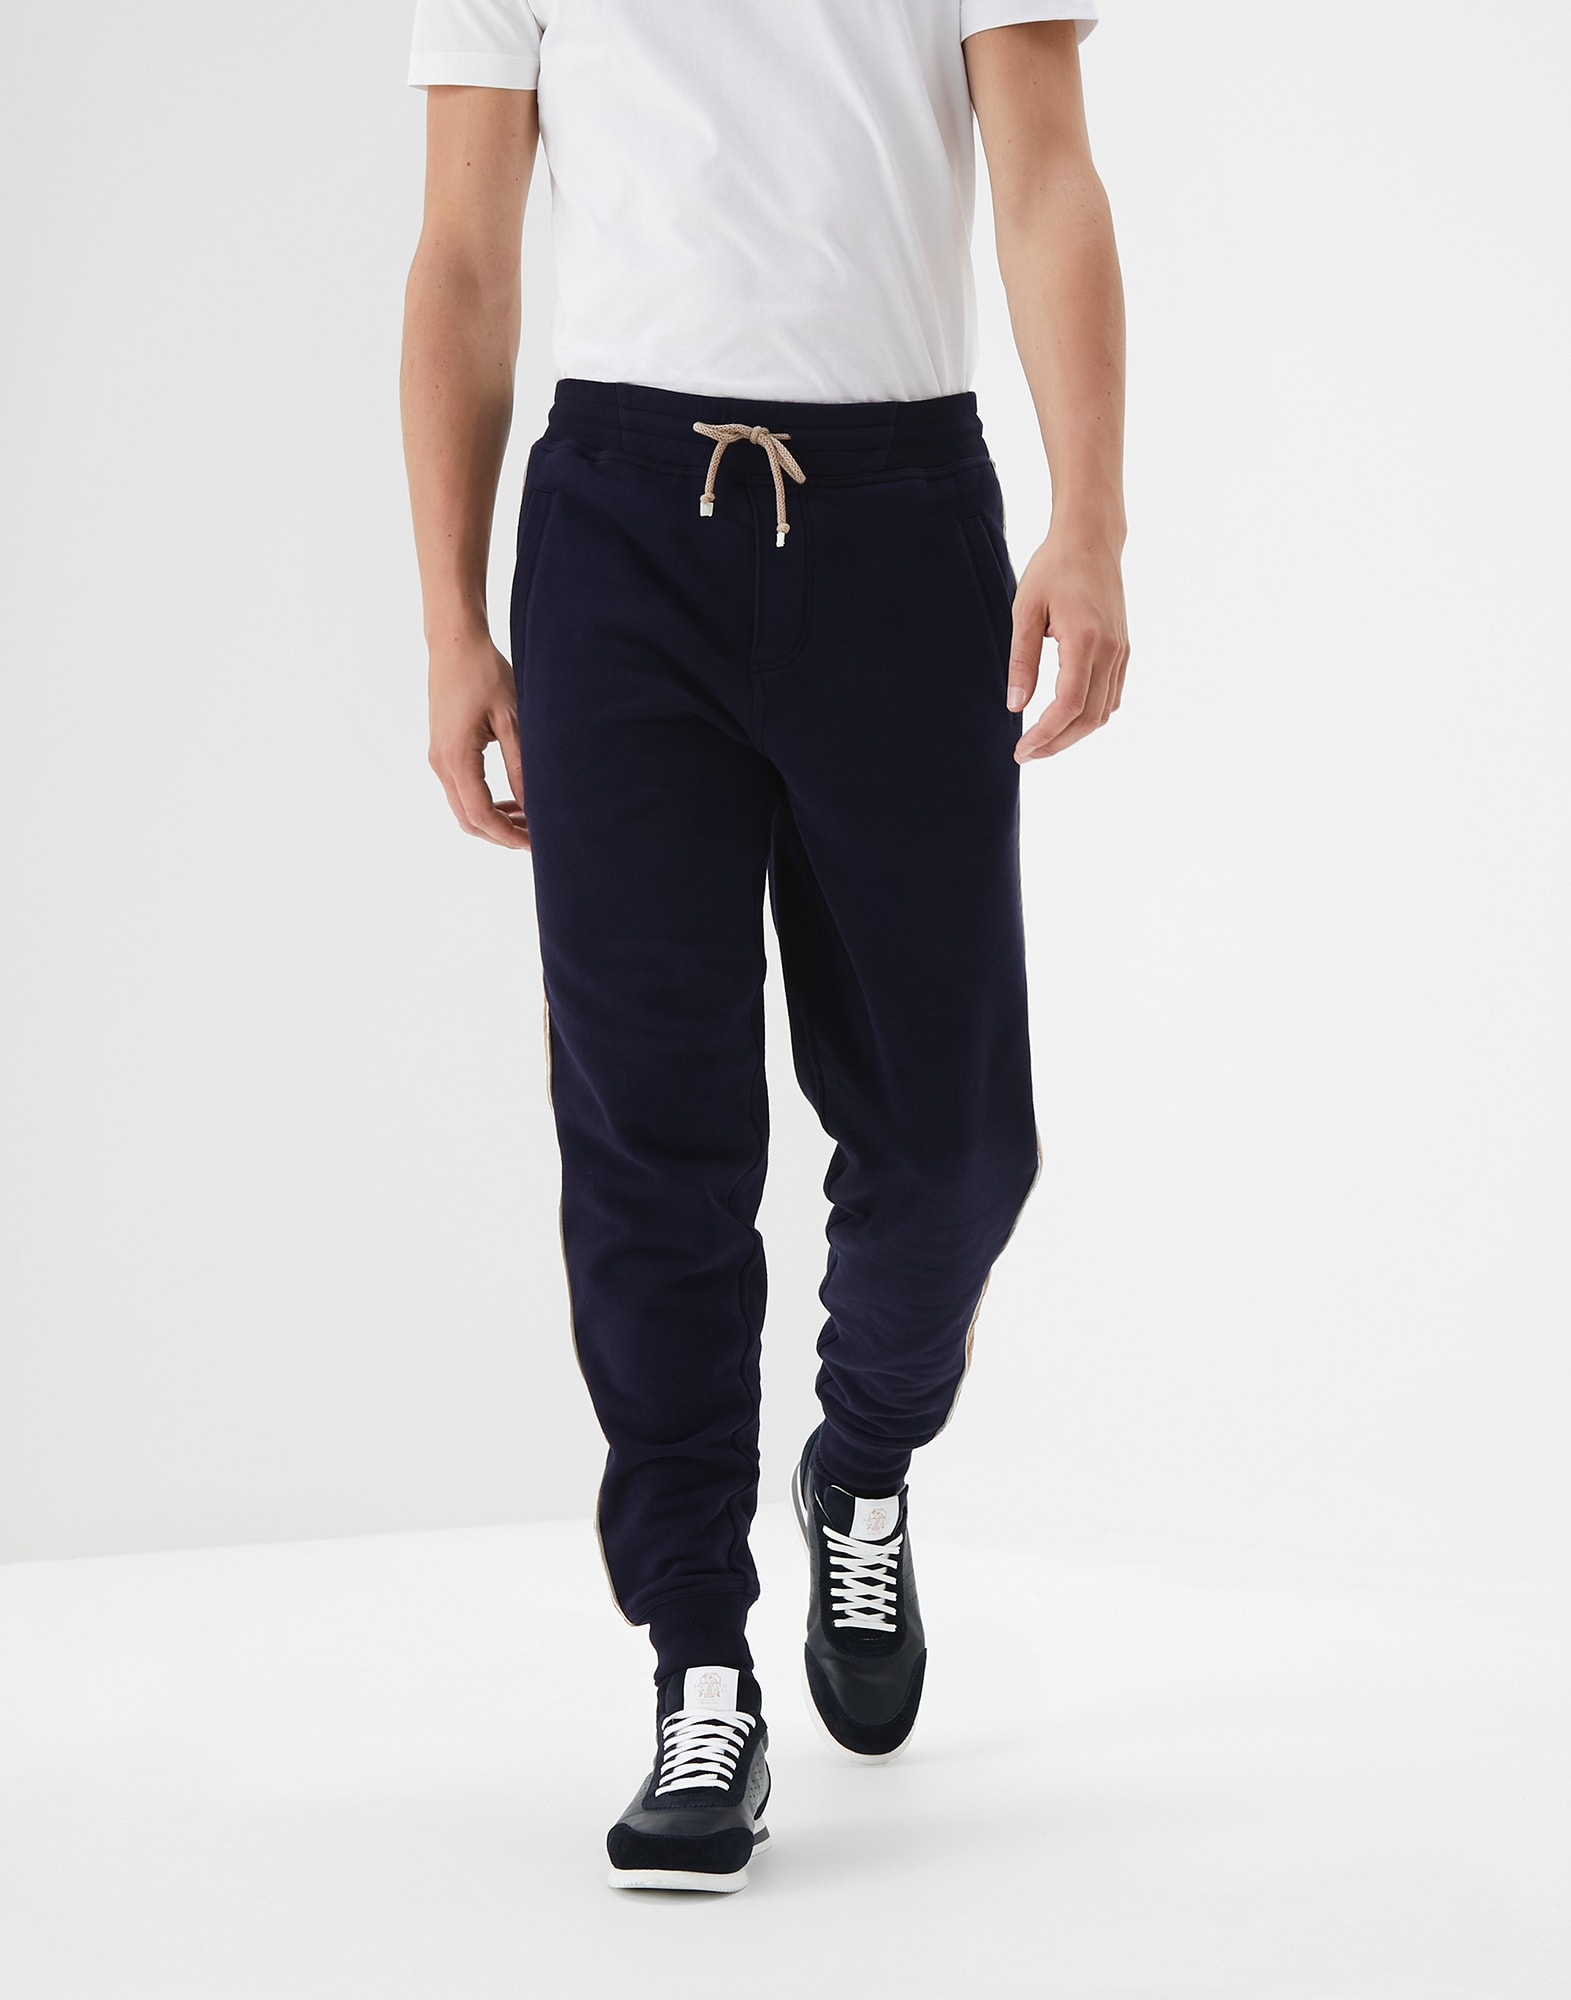 Sweatpants Cobalt Man 0 - Brunello Cucinelli